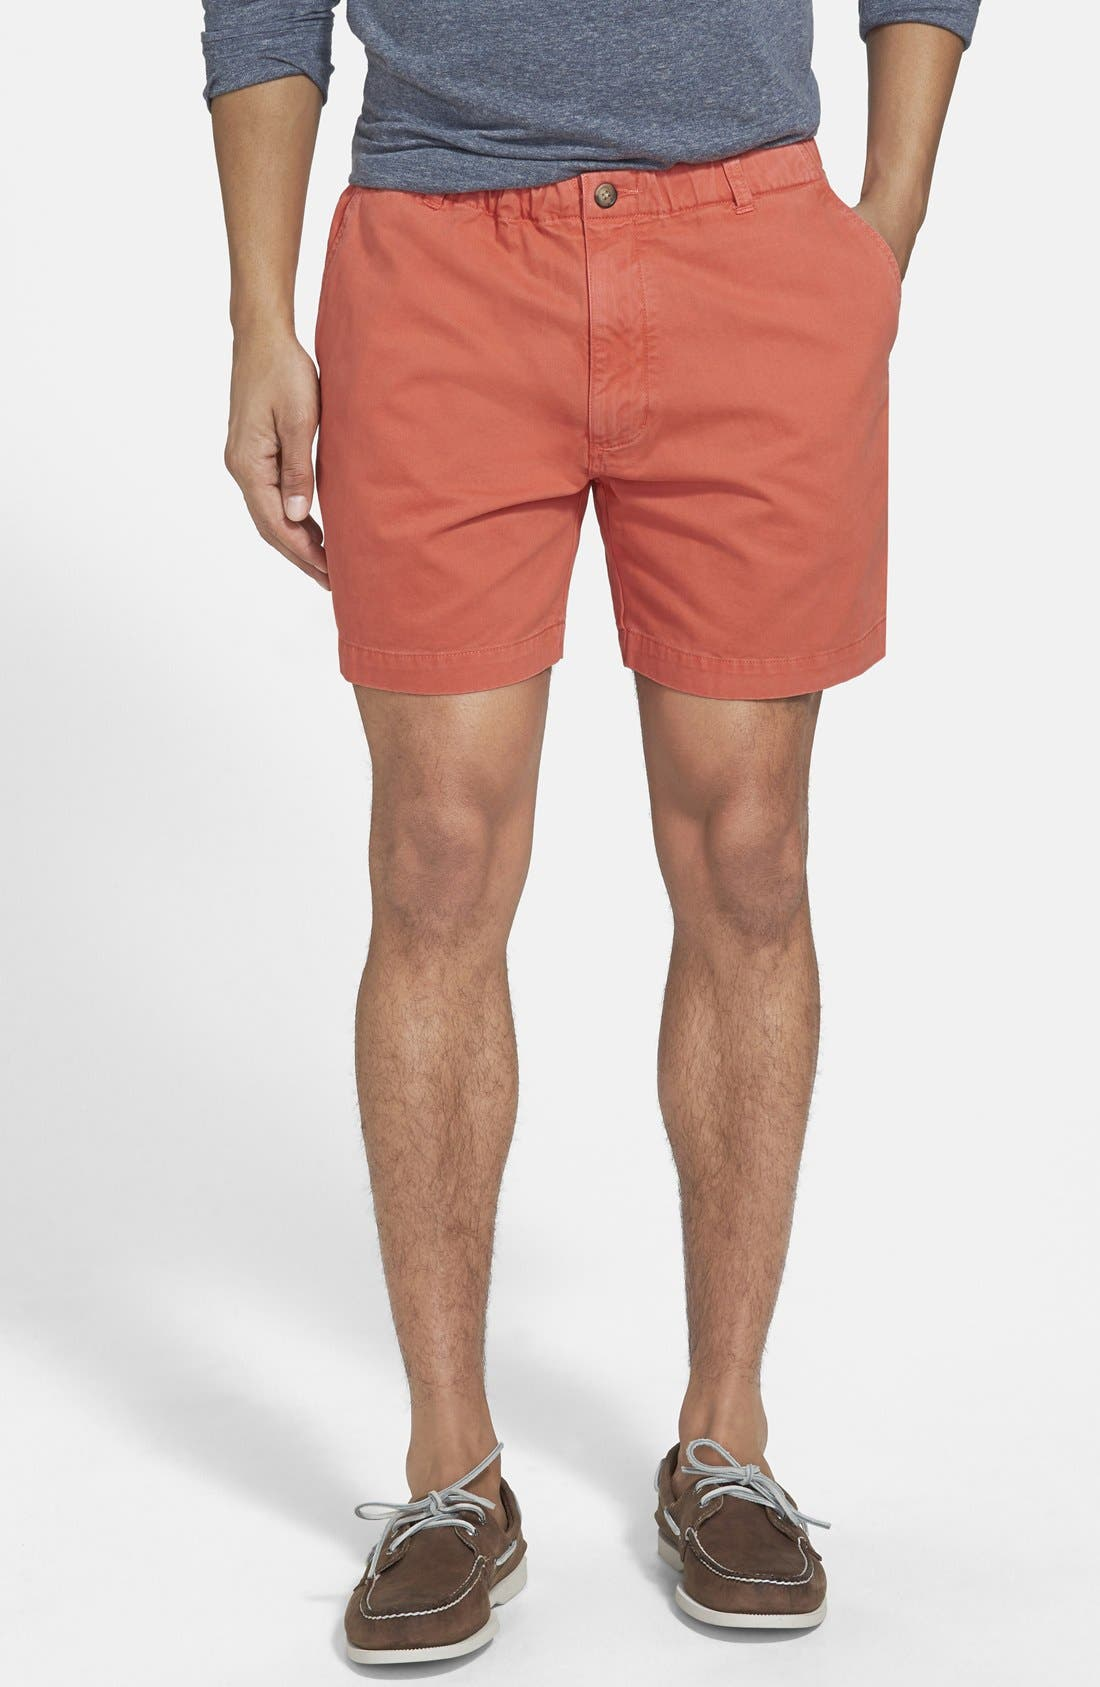 'Snappers' Vintage Wash Shorts,                             Main thumbnail 1, color,                             Coral